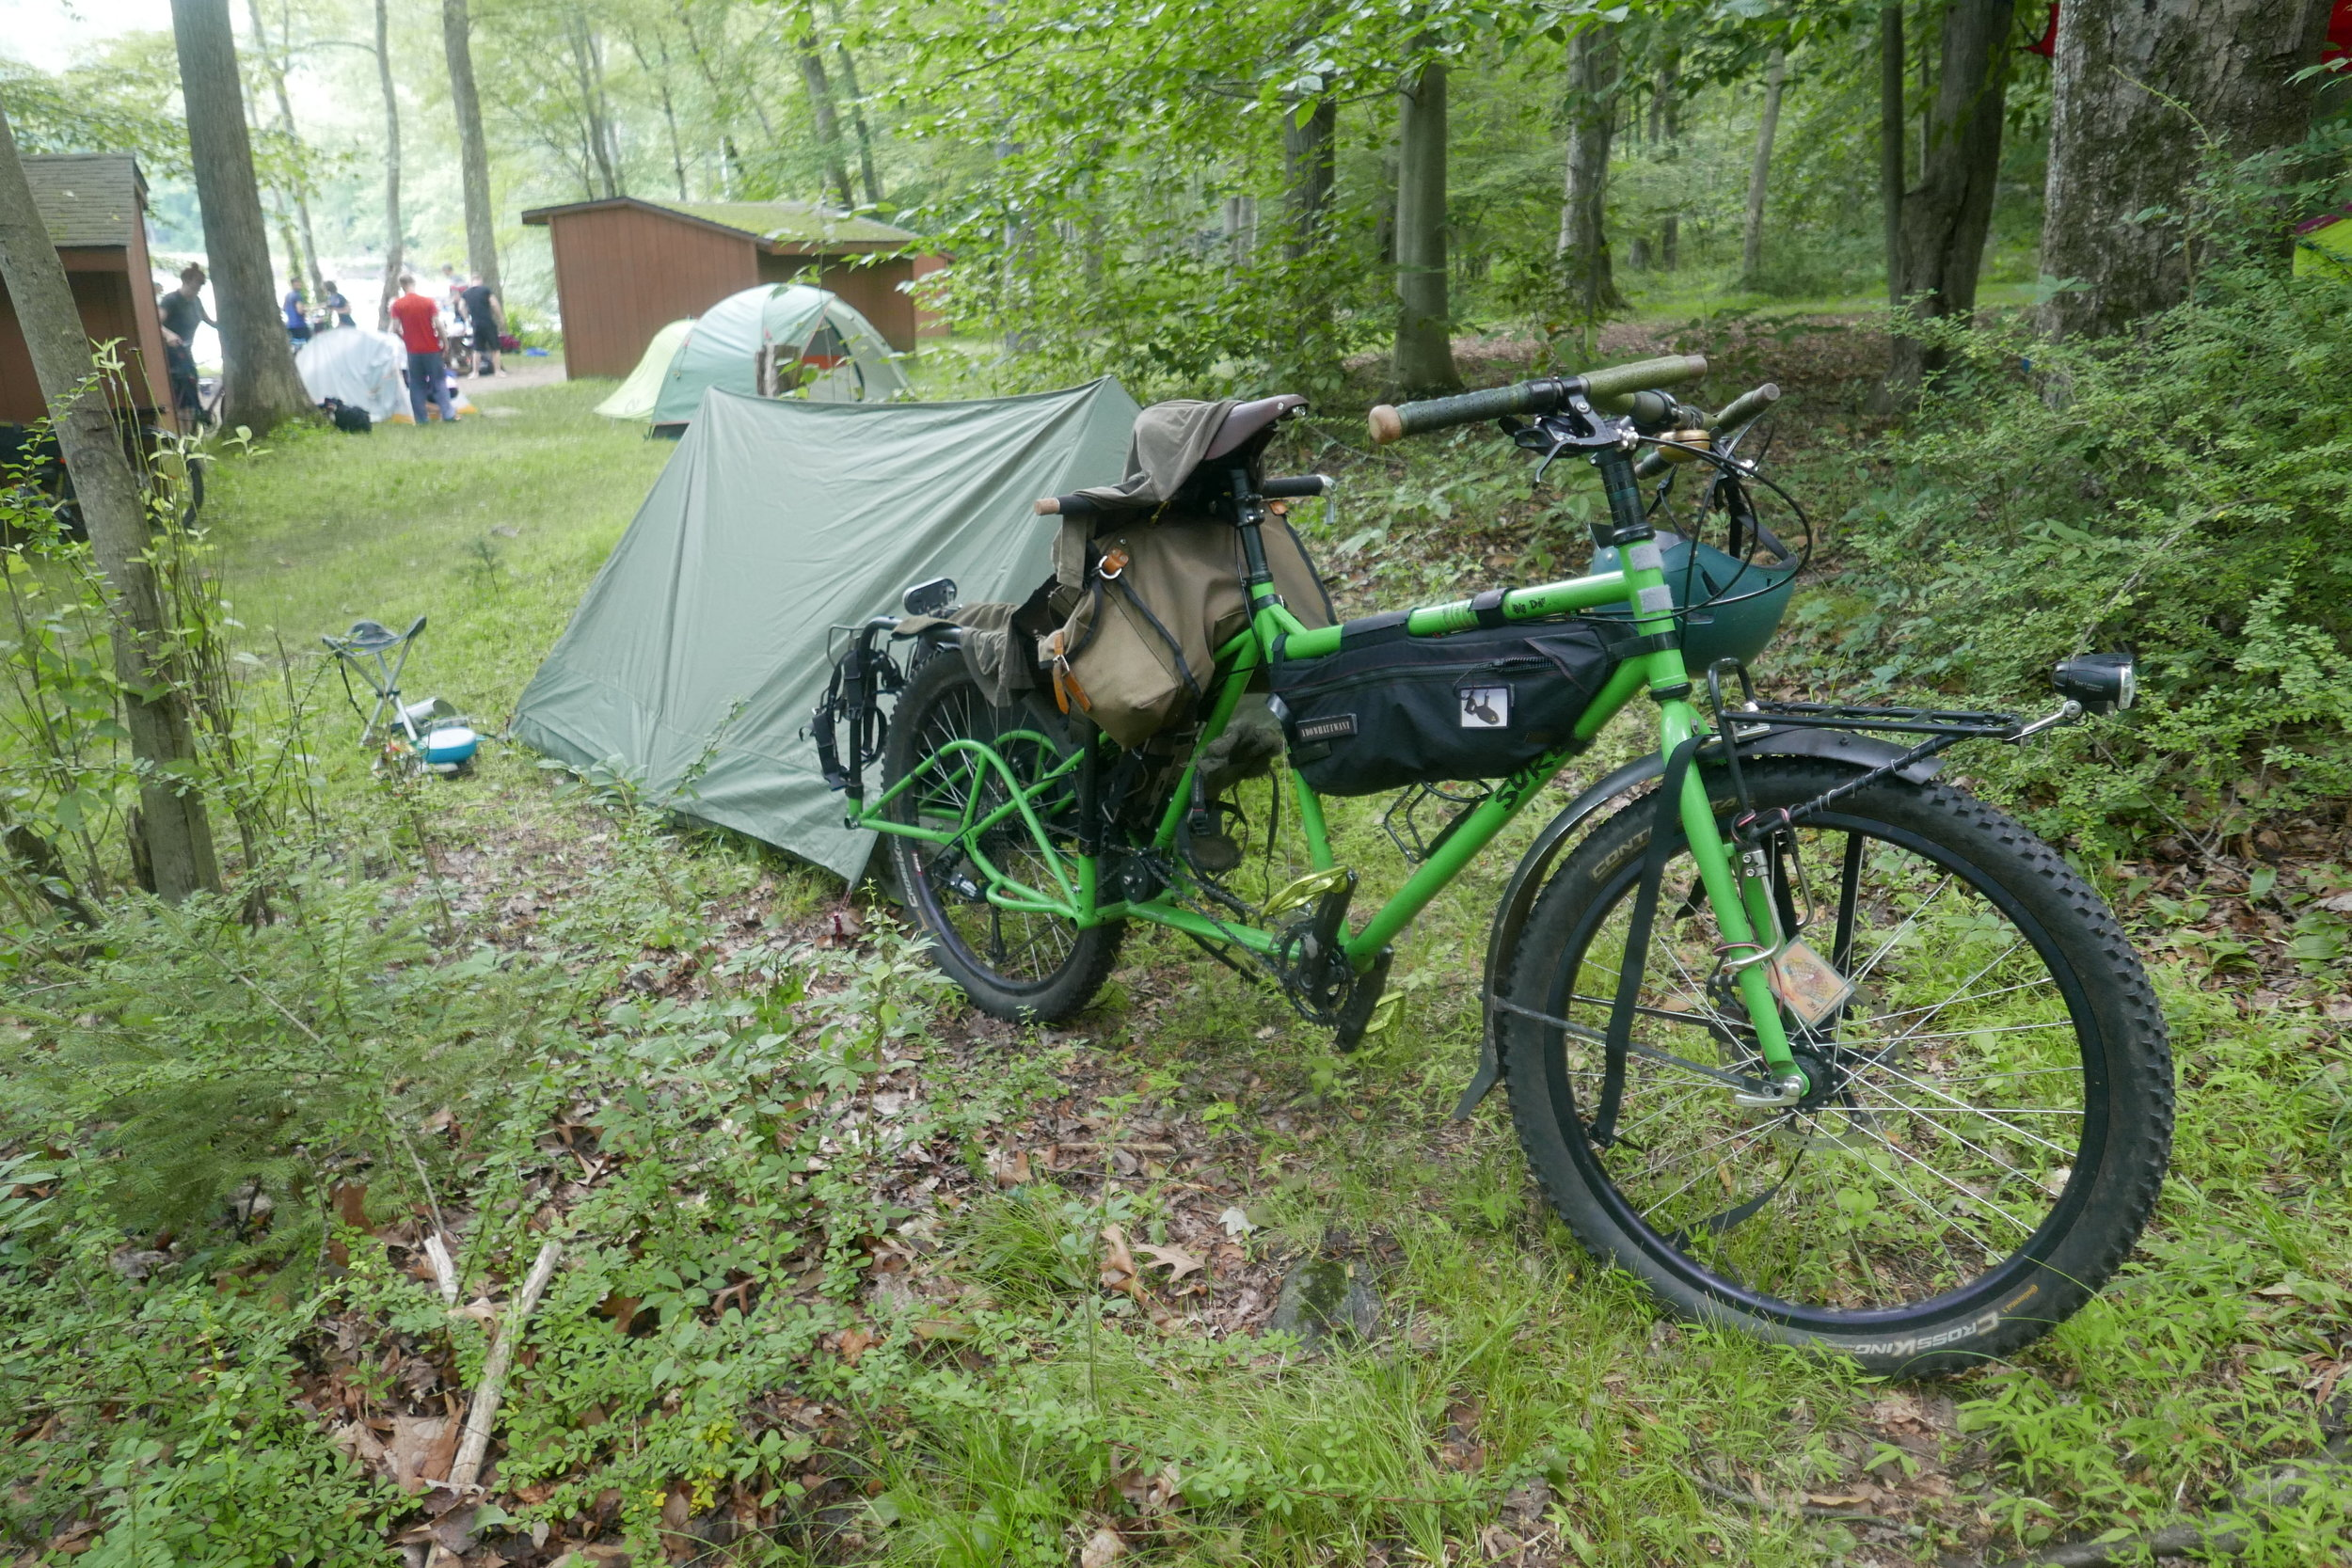 The Ultimate Bike Packing Rig